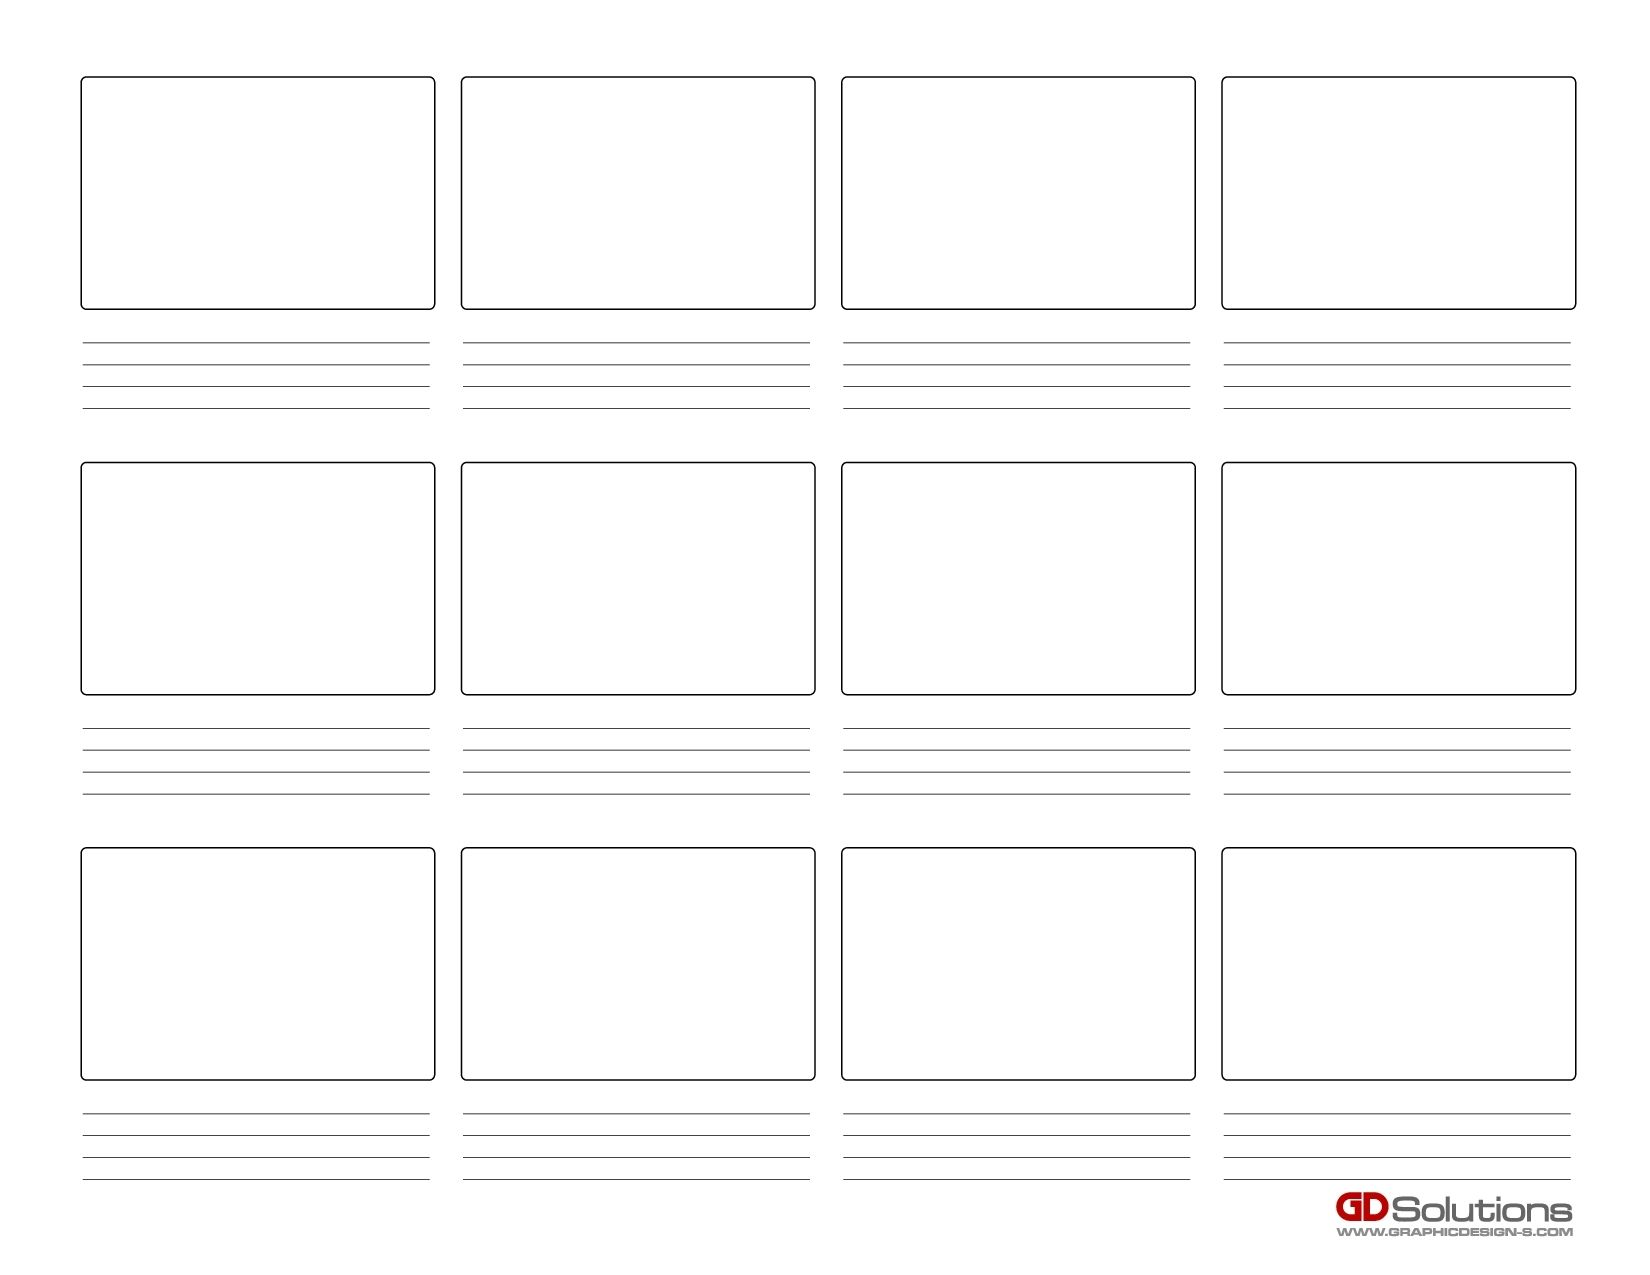 Storyboarding With Images Storyboard Template